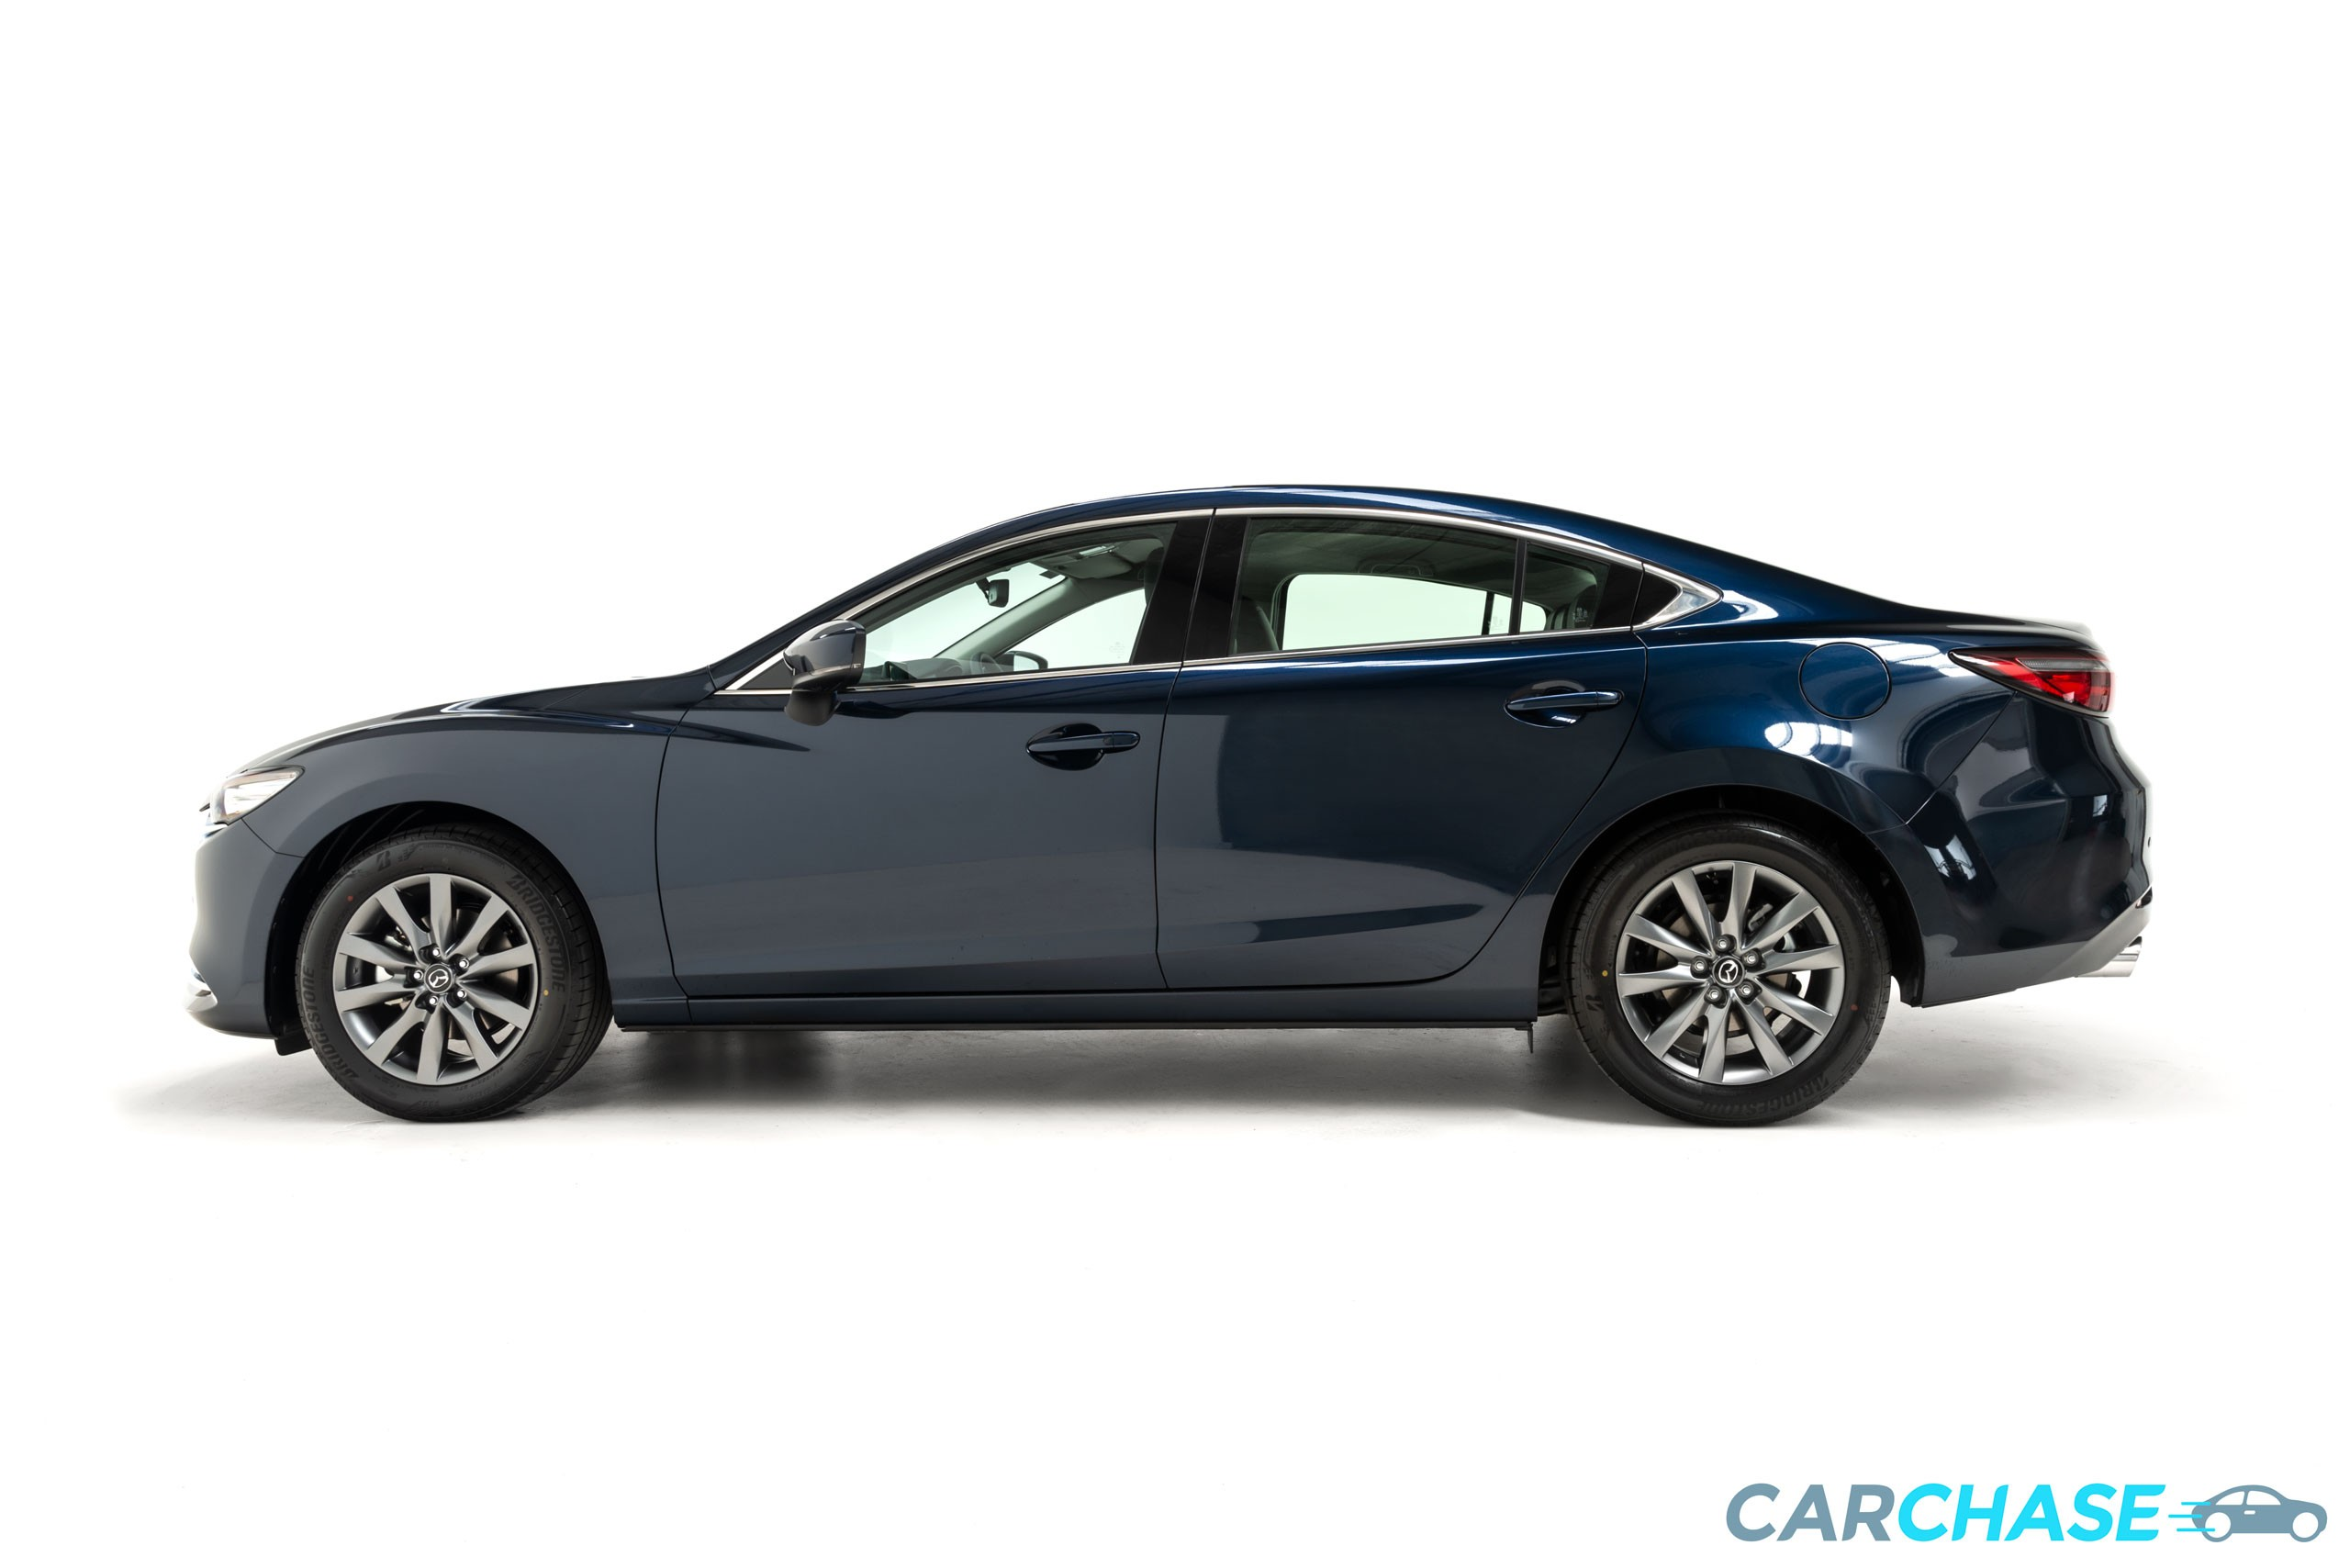 Image of left profile of 2019 Mazda 6 Touring